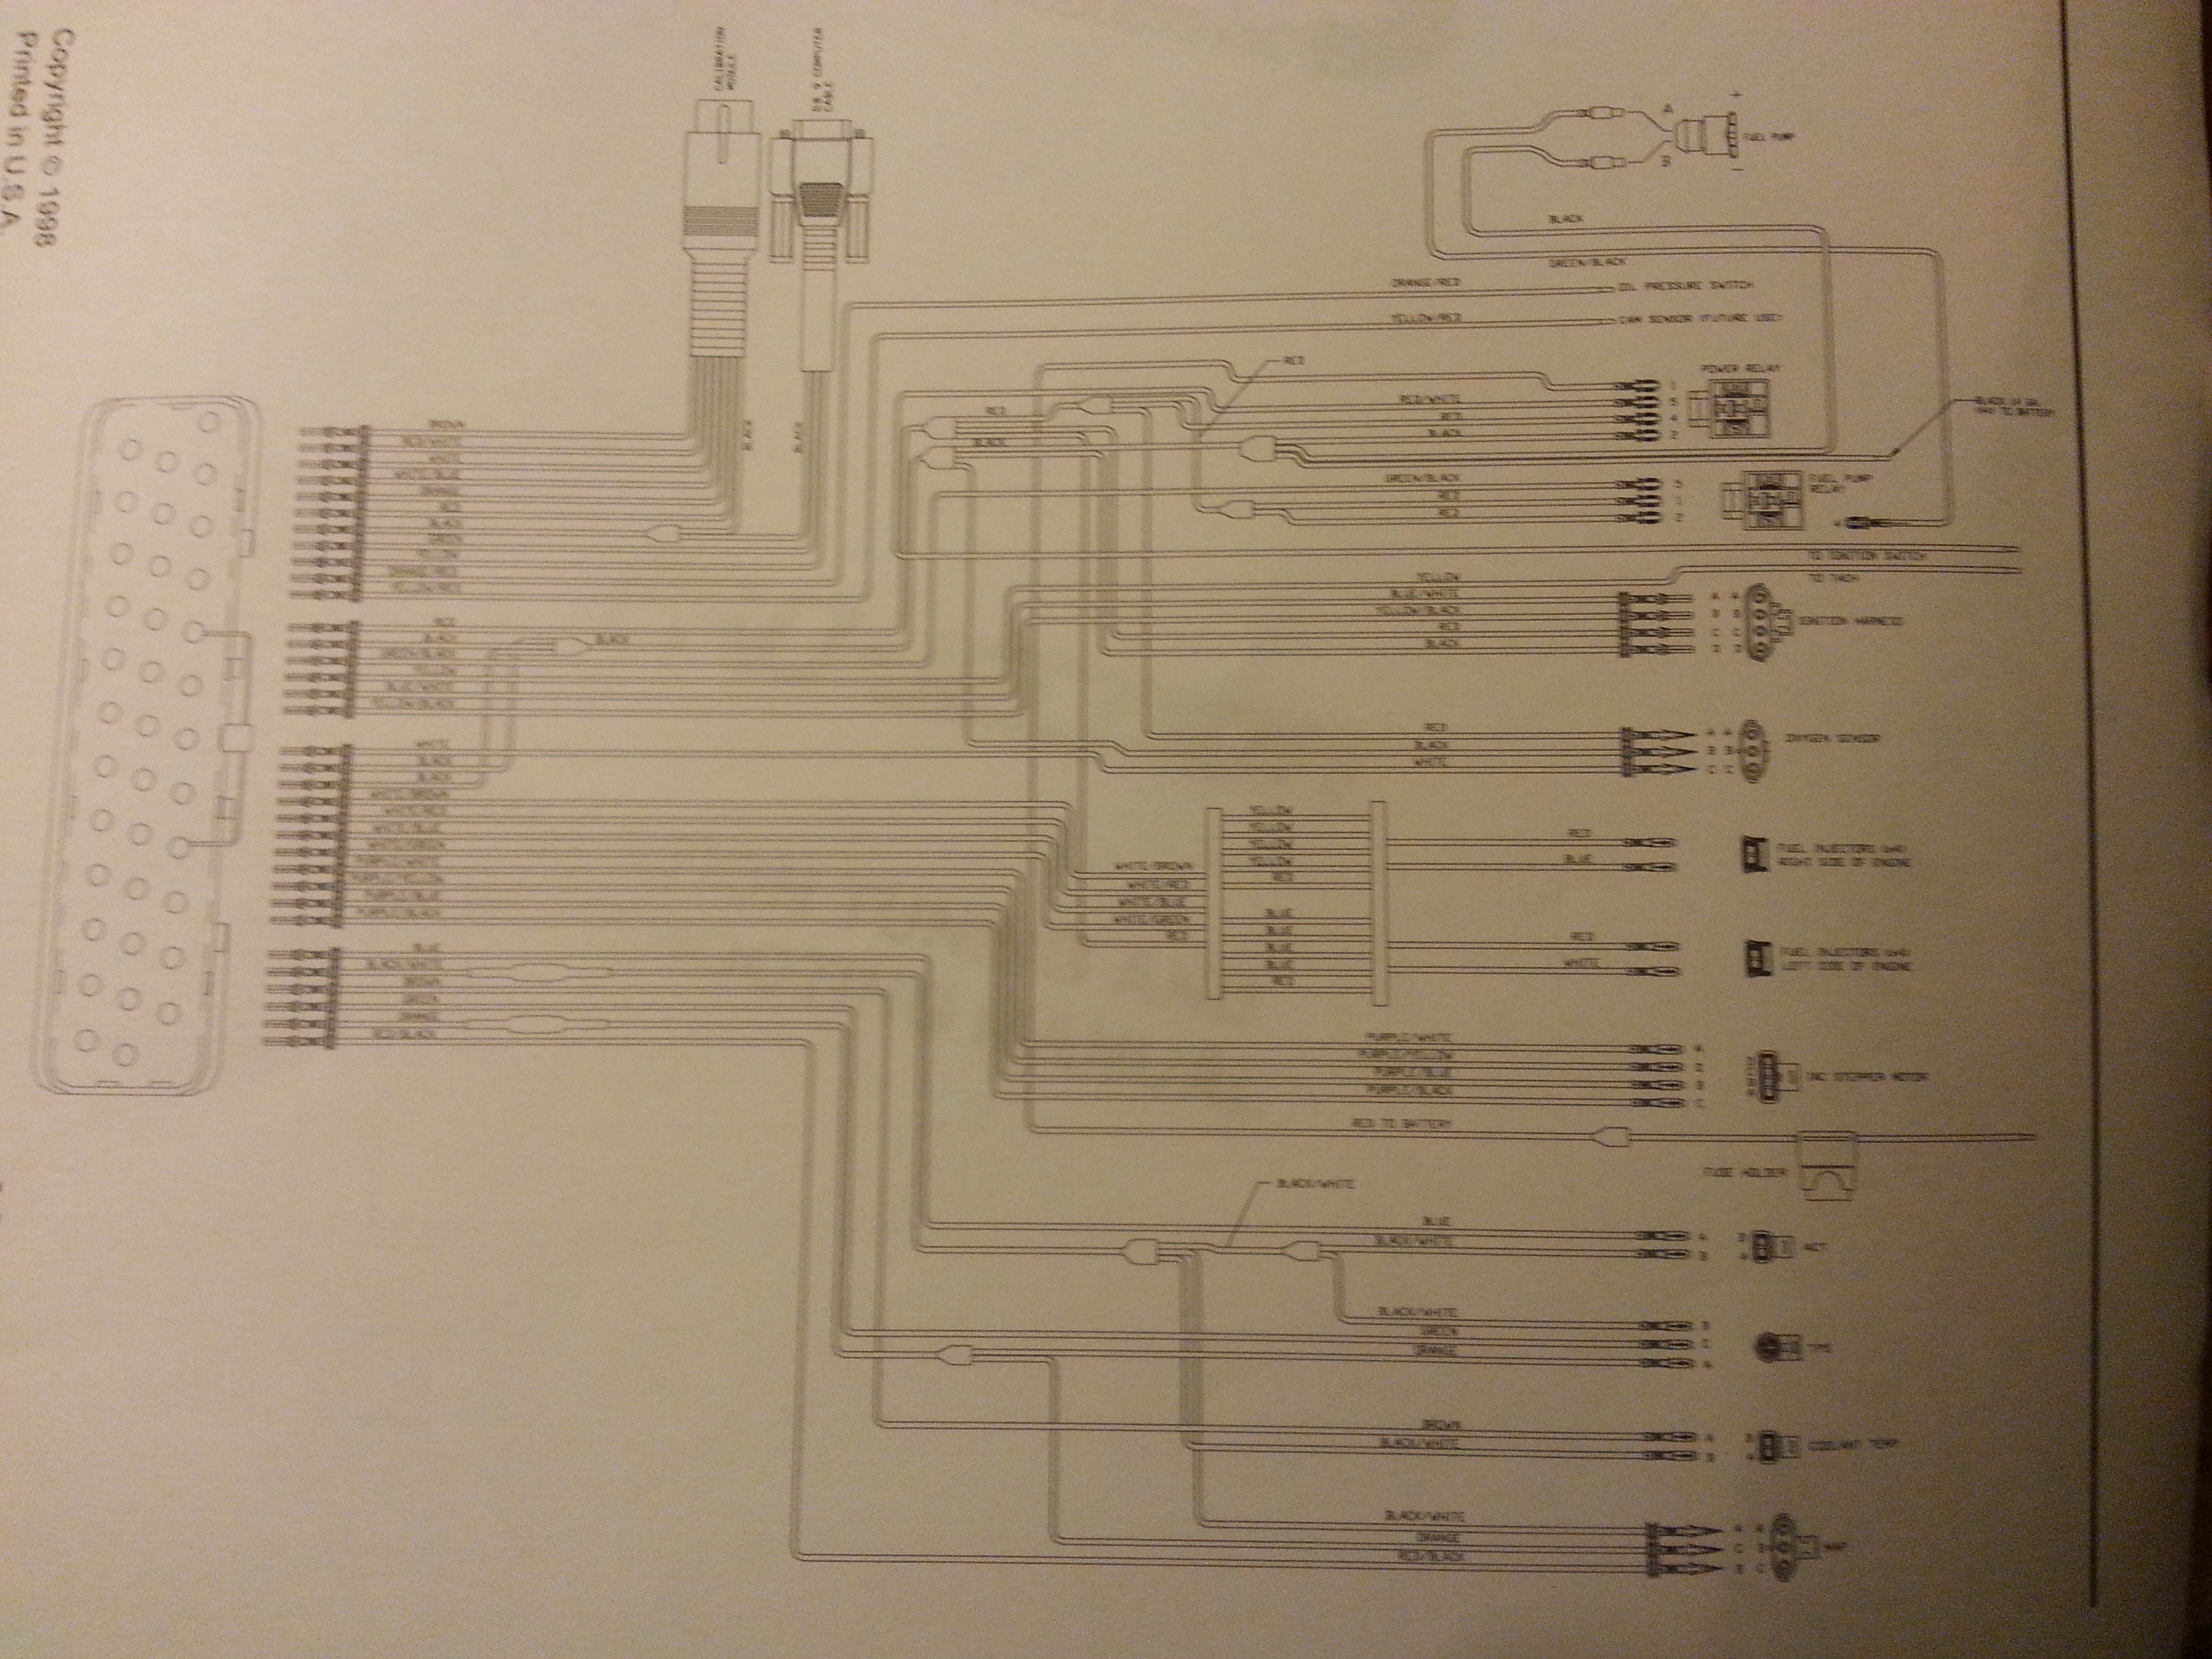 holley projection wiring diagram wiring diagram u2022 rh msblog co